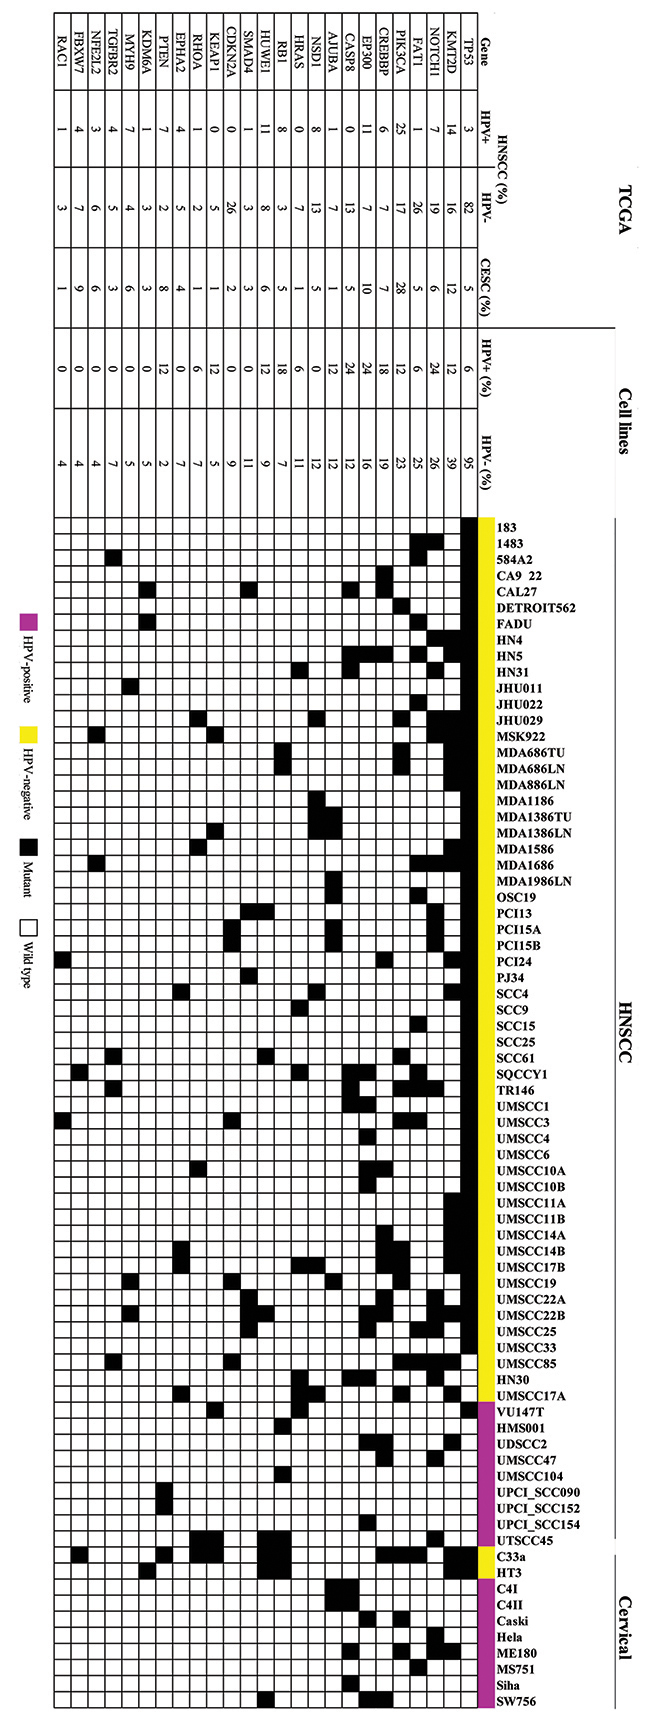 HNSCC and CESC cell lines have mutation frequencies similar to those in patient tumors.